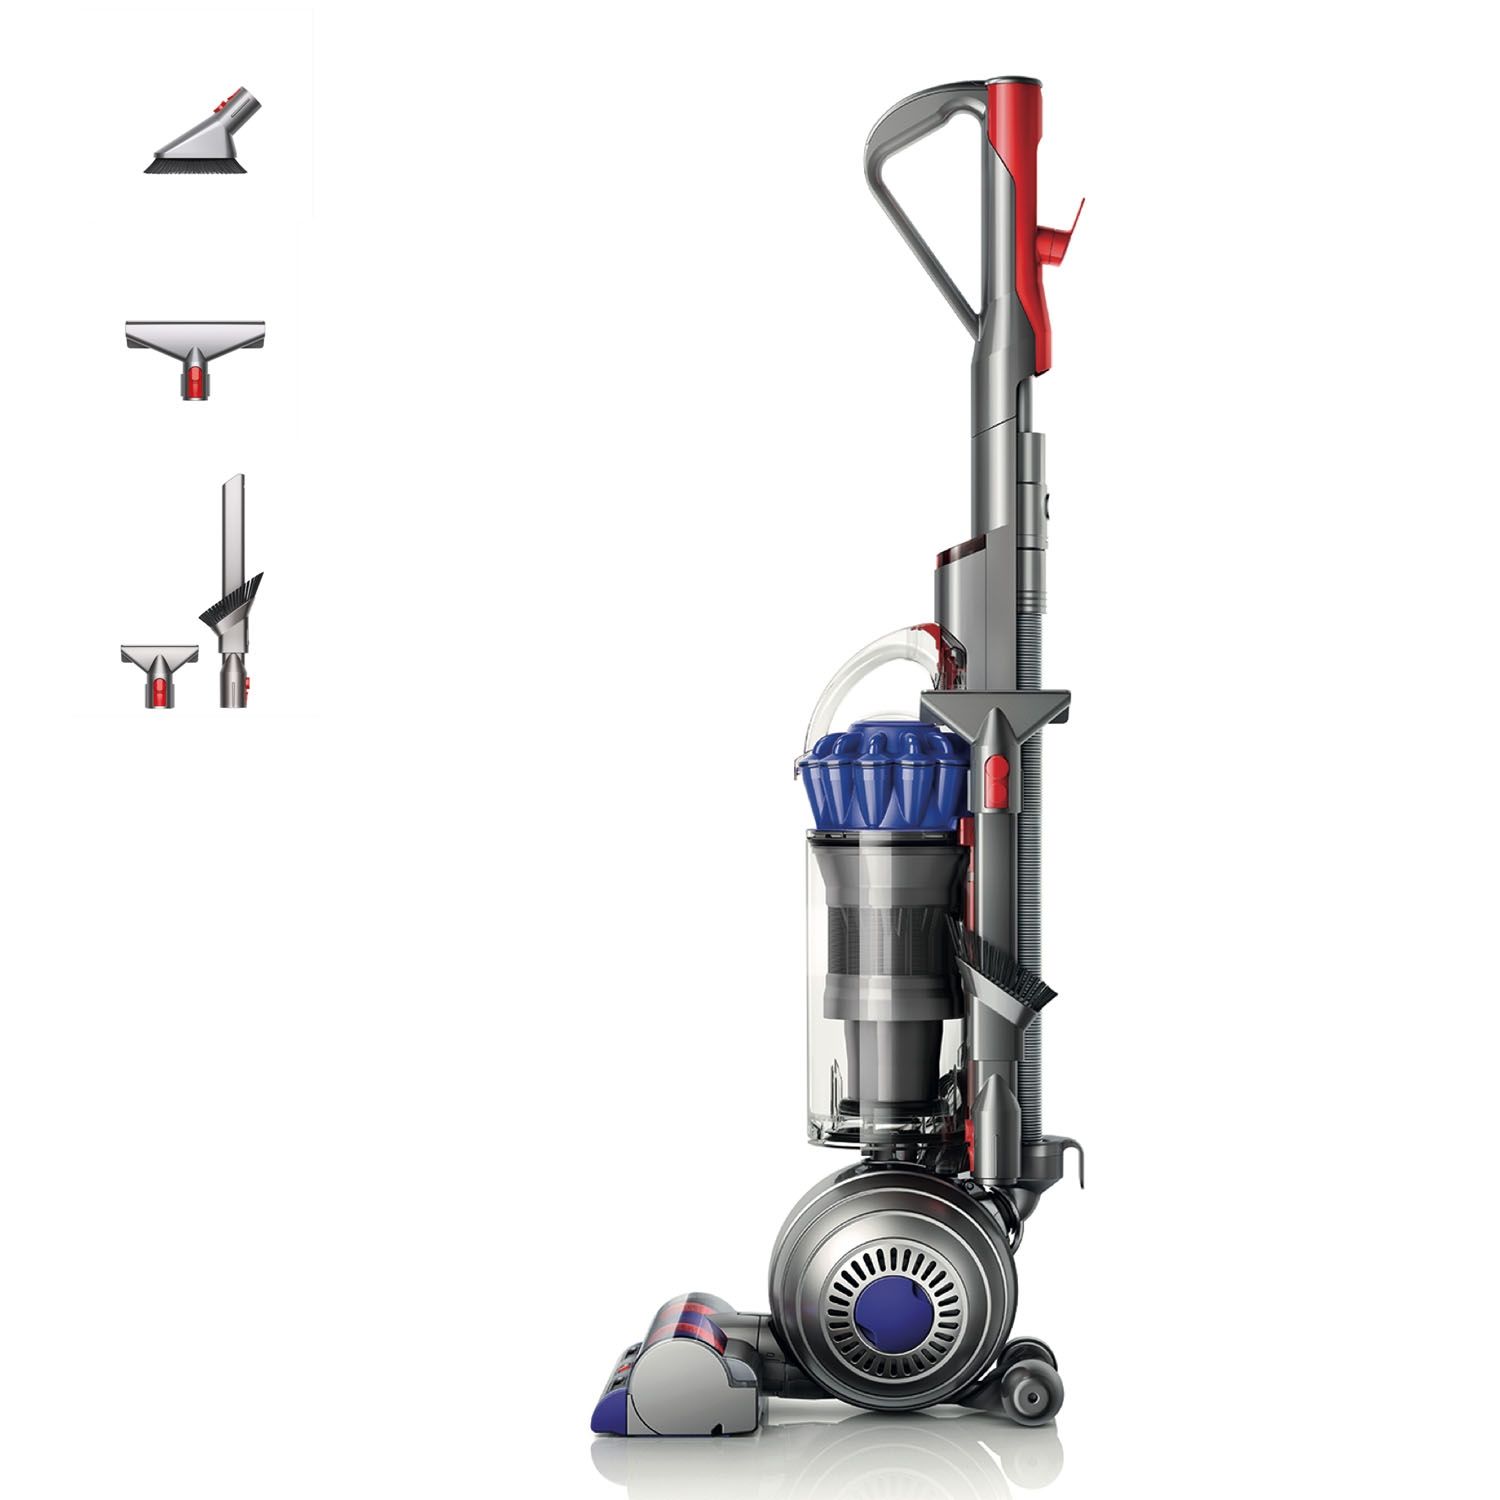 Image of Dyson Small Ball Allergy Upright Vacuum Cleaner